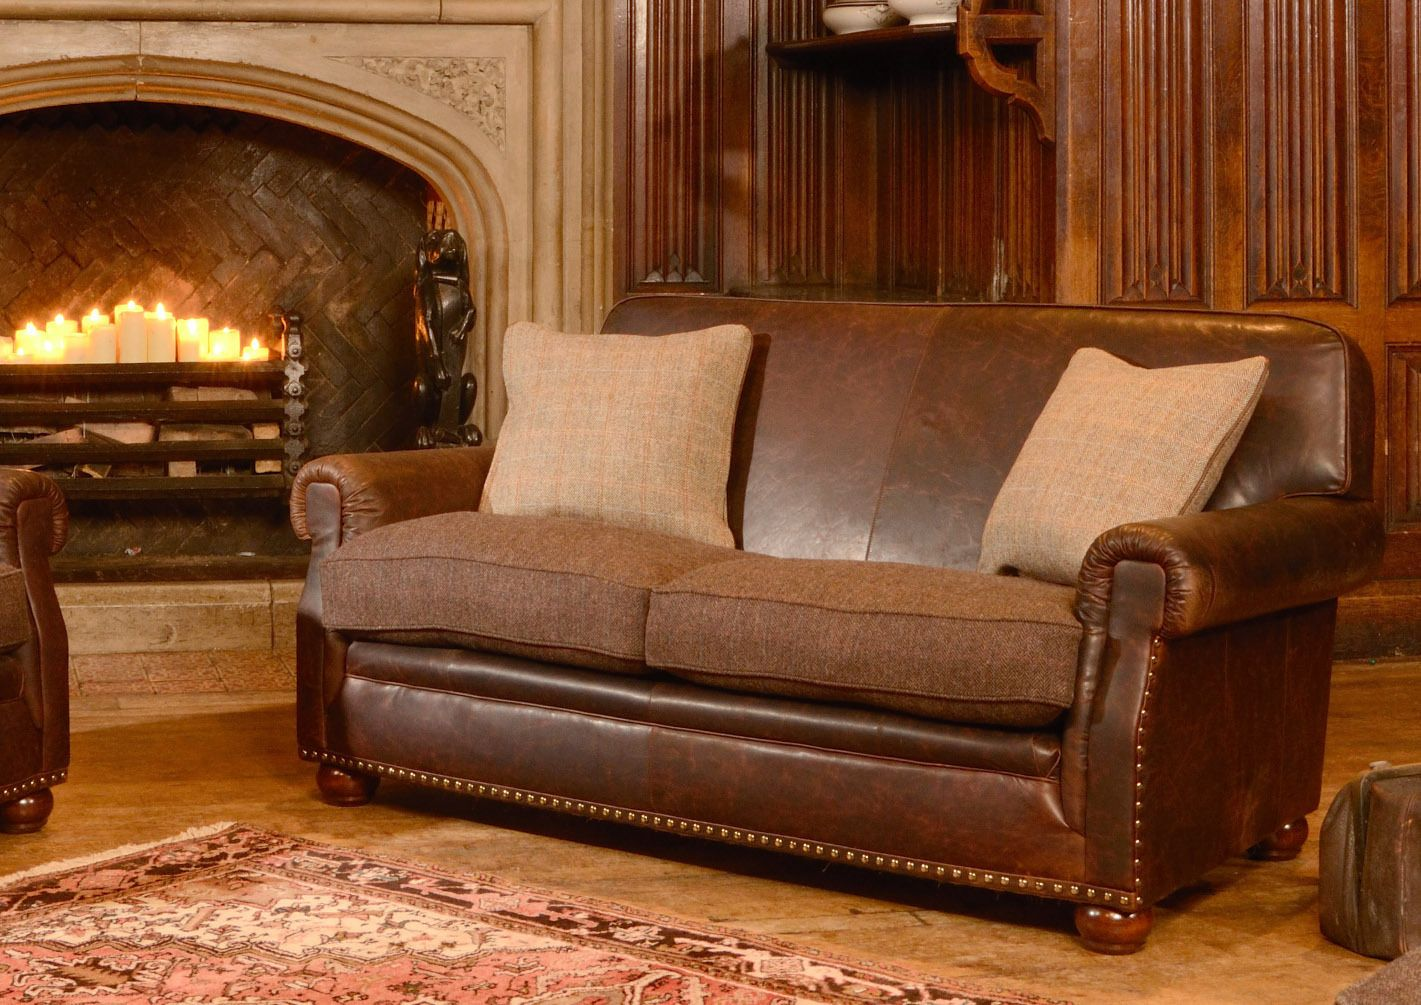 Scottish tweed and leather sofa laurentian styles for Leather and tweed sofa